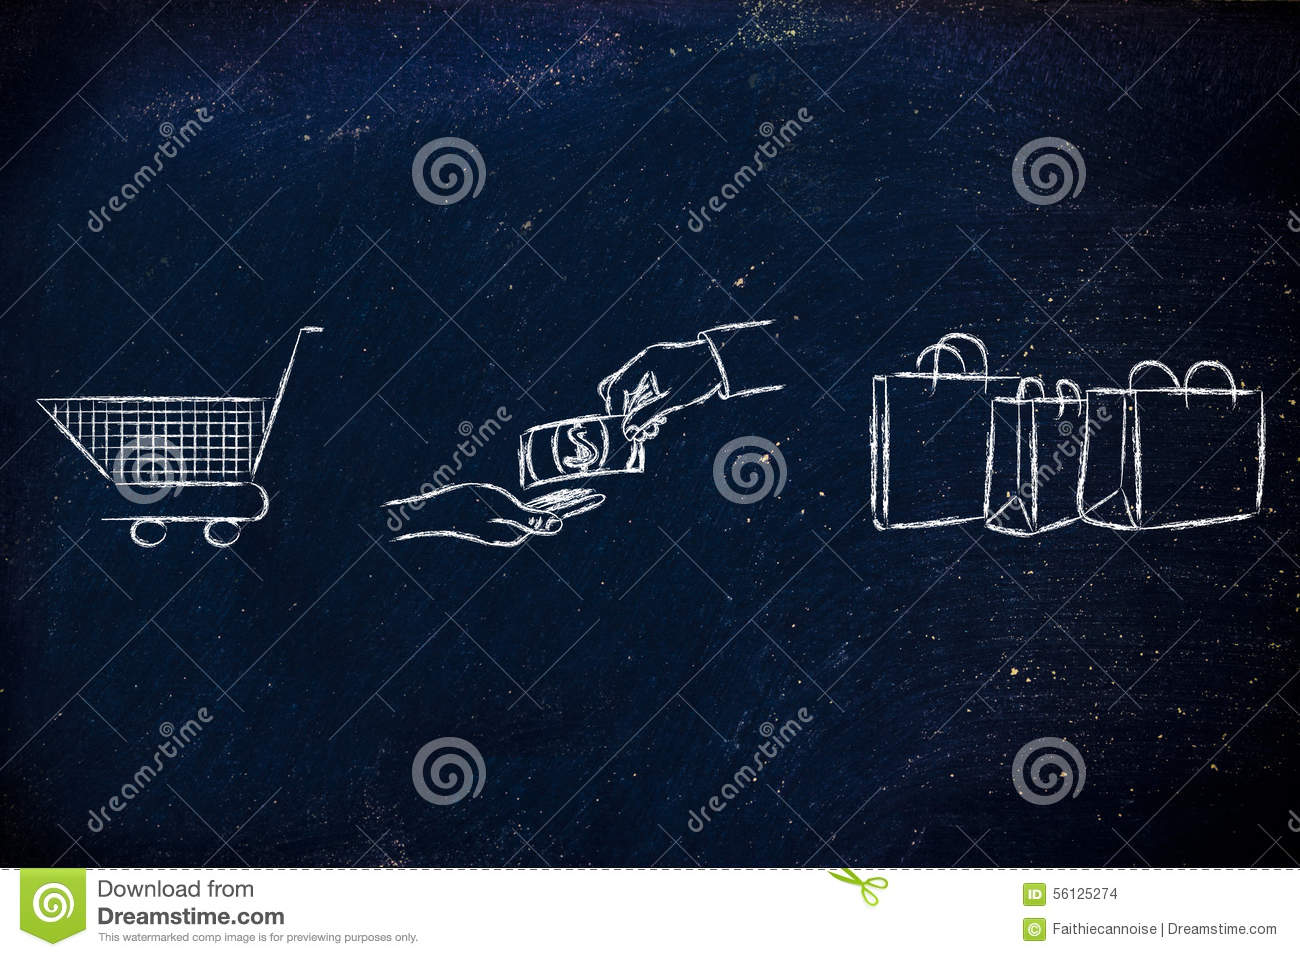 Shopping cart, hands exchanging money and bags